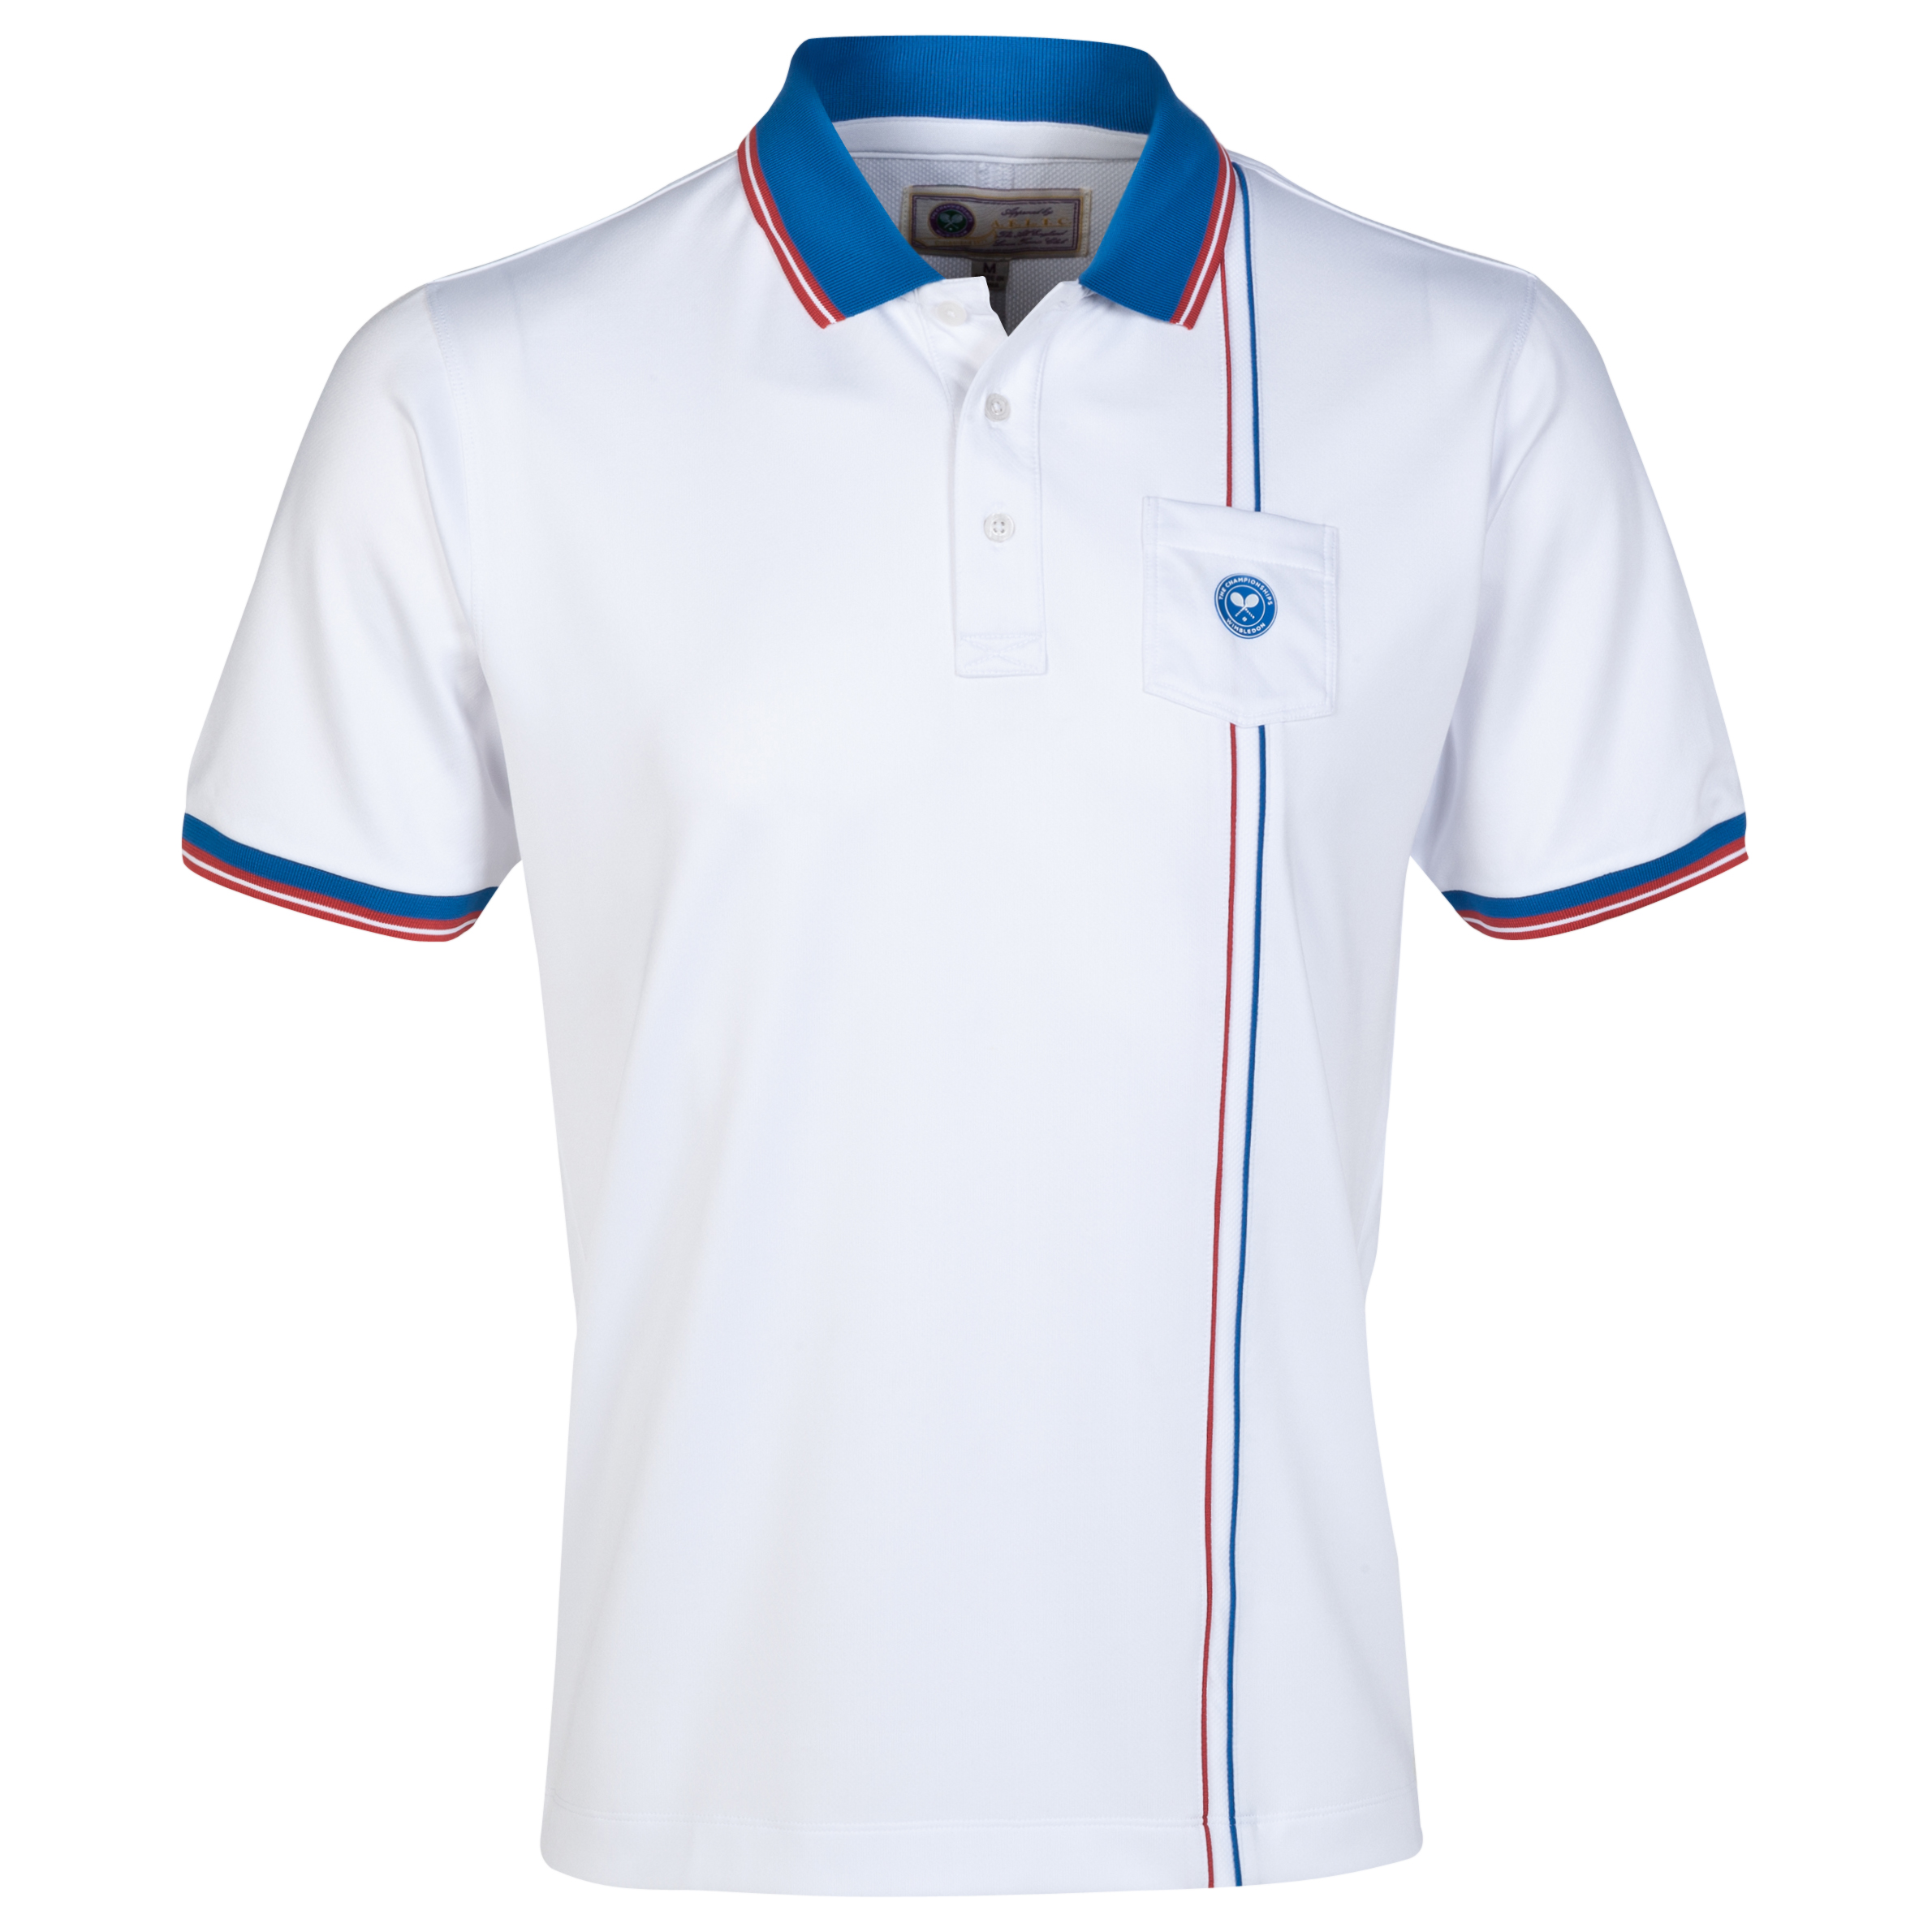 Wimbledon Player Polo Shirt White